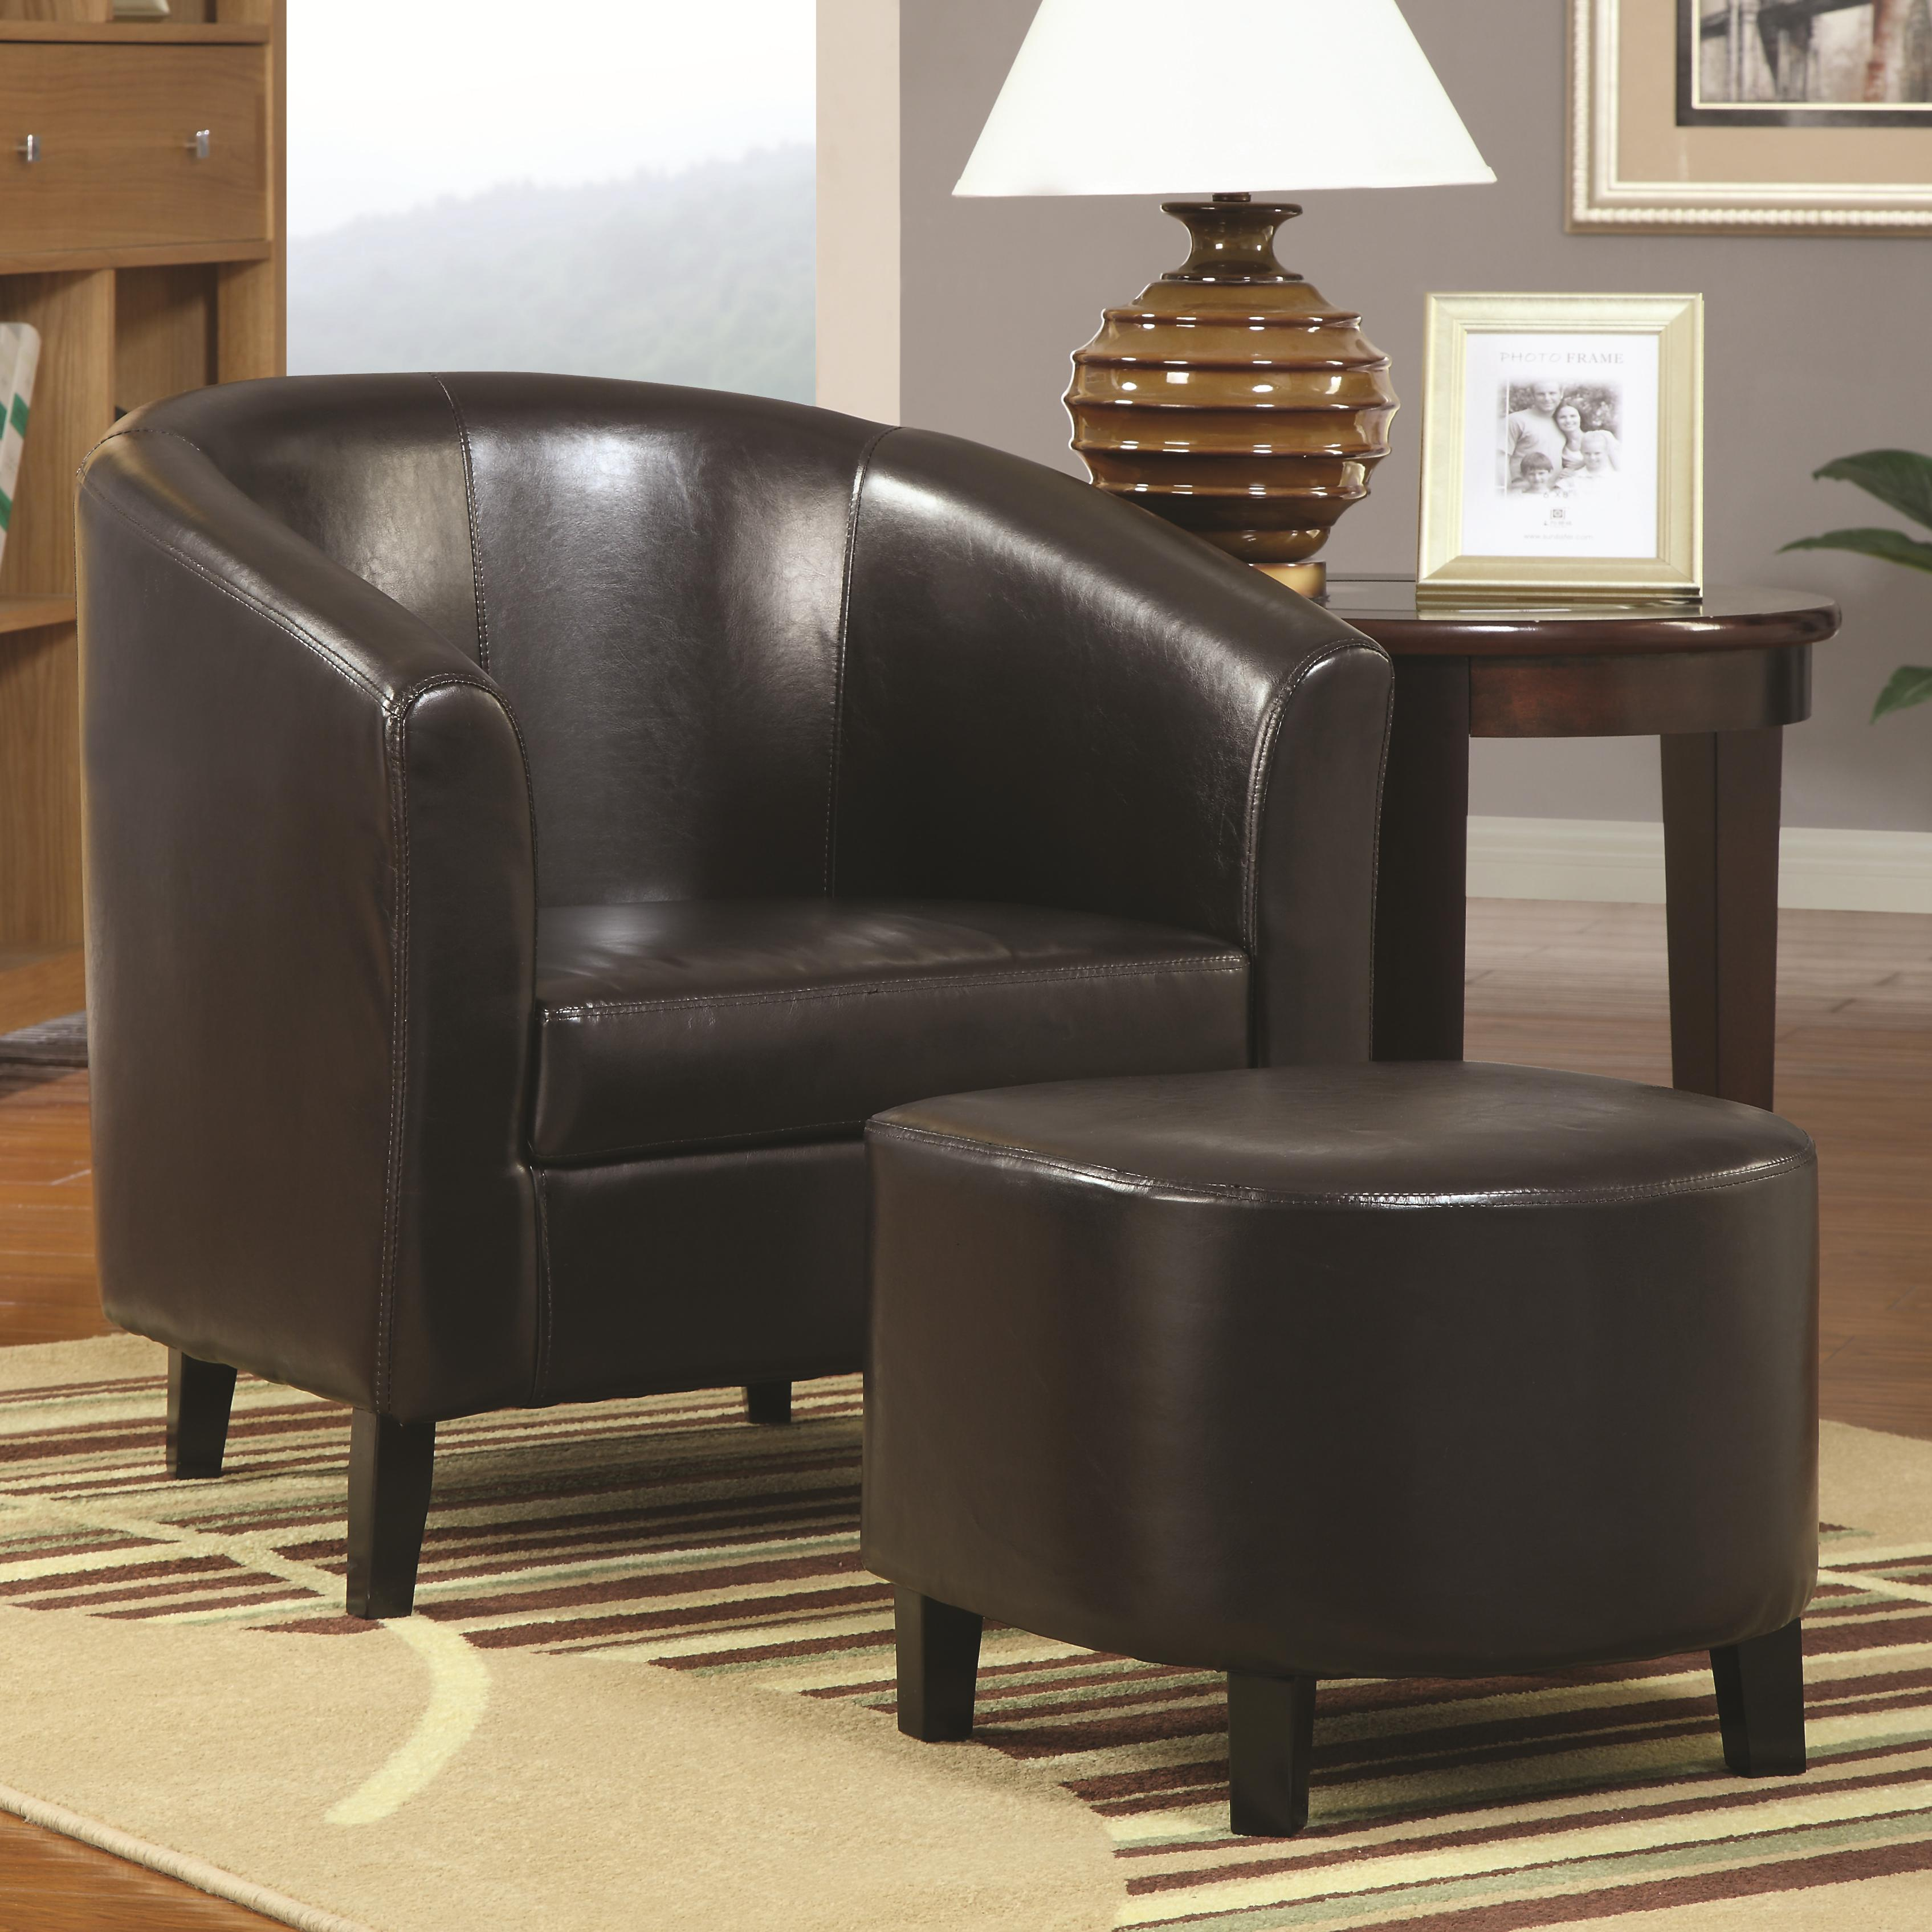 accent chairs with ottomans swing chair baby mothercare coaster seating w ottoman rooms for less and